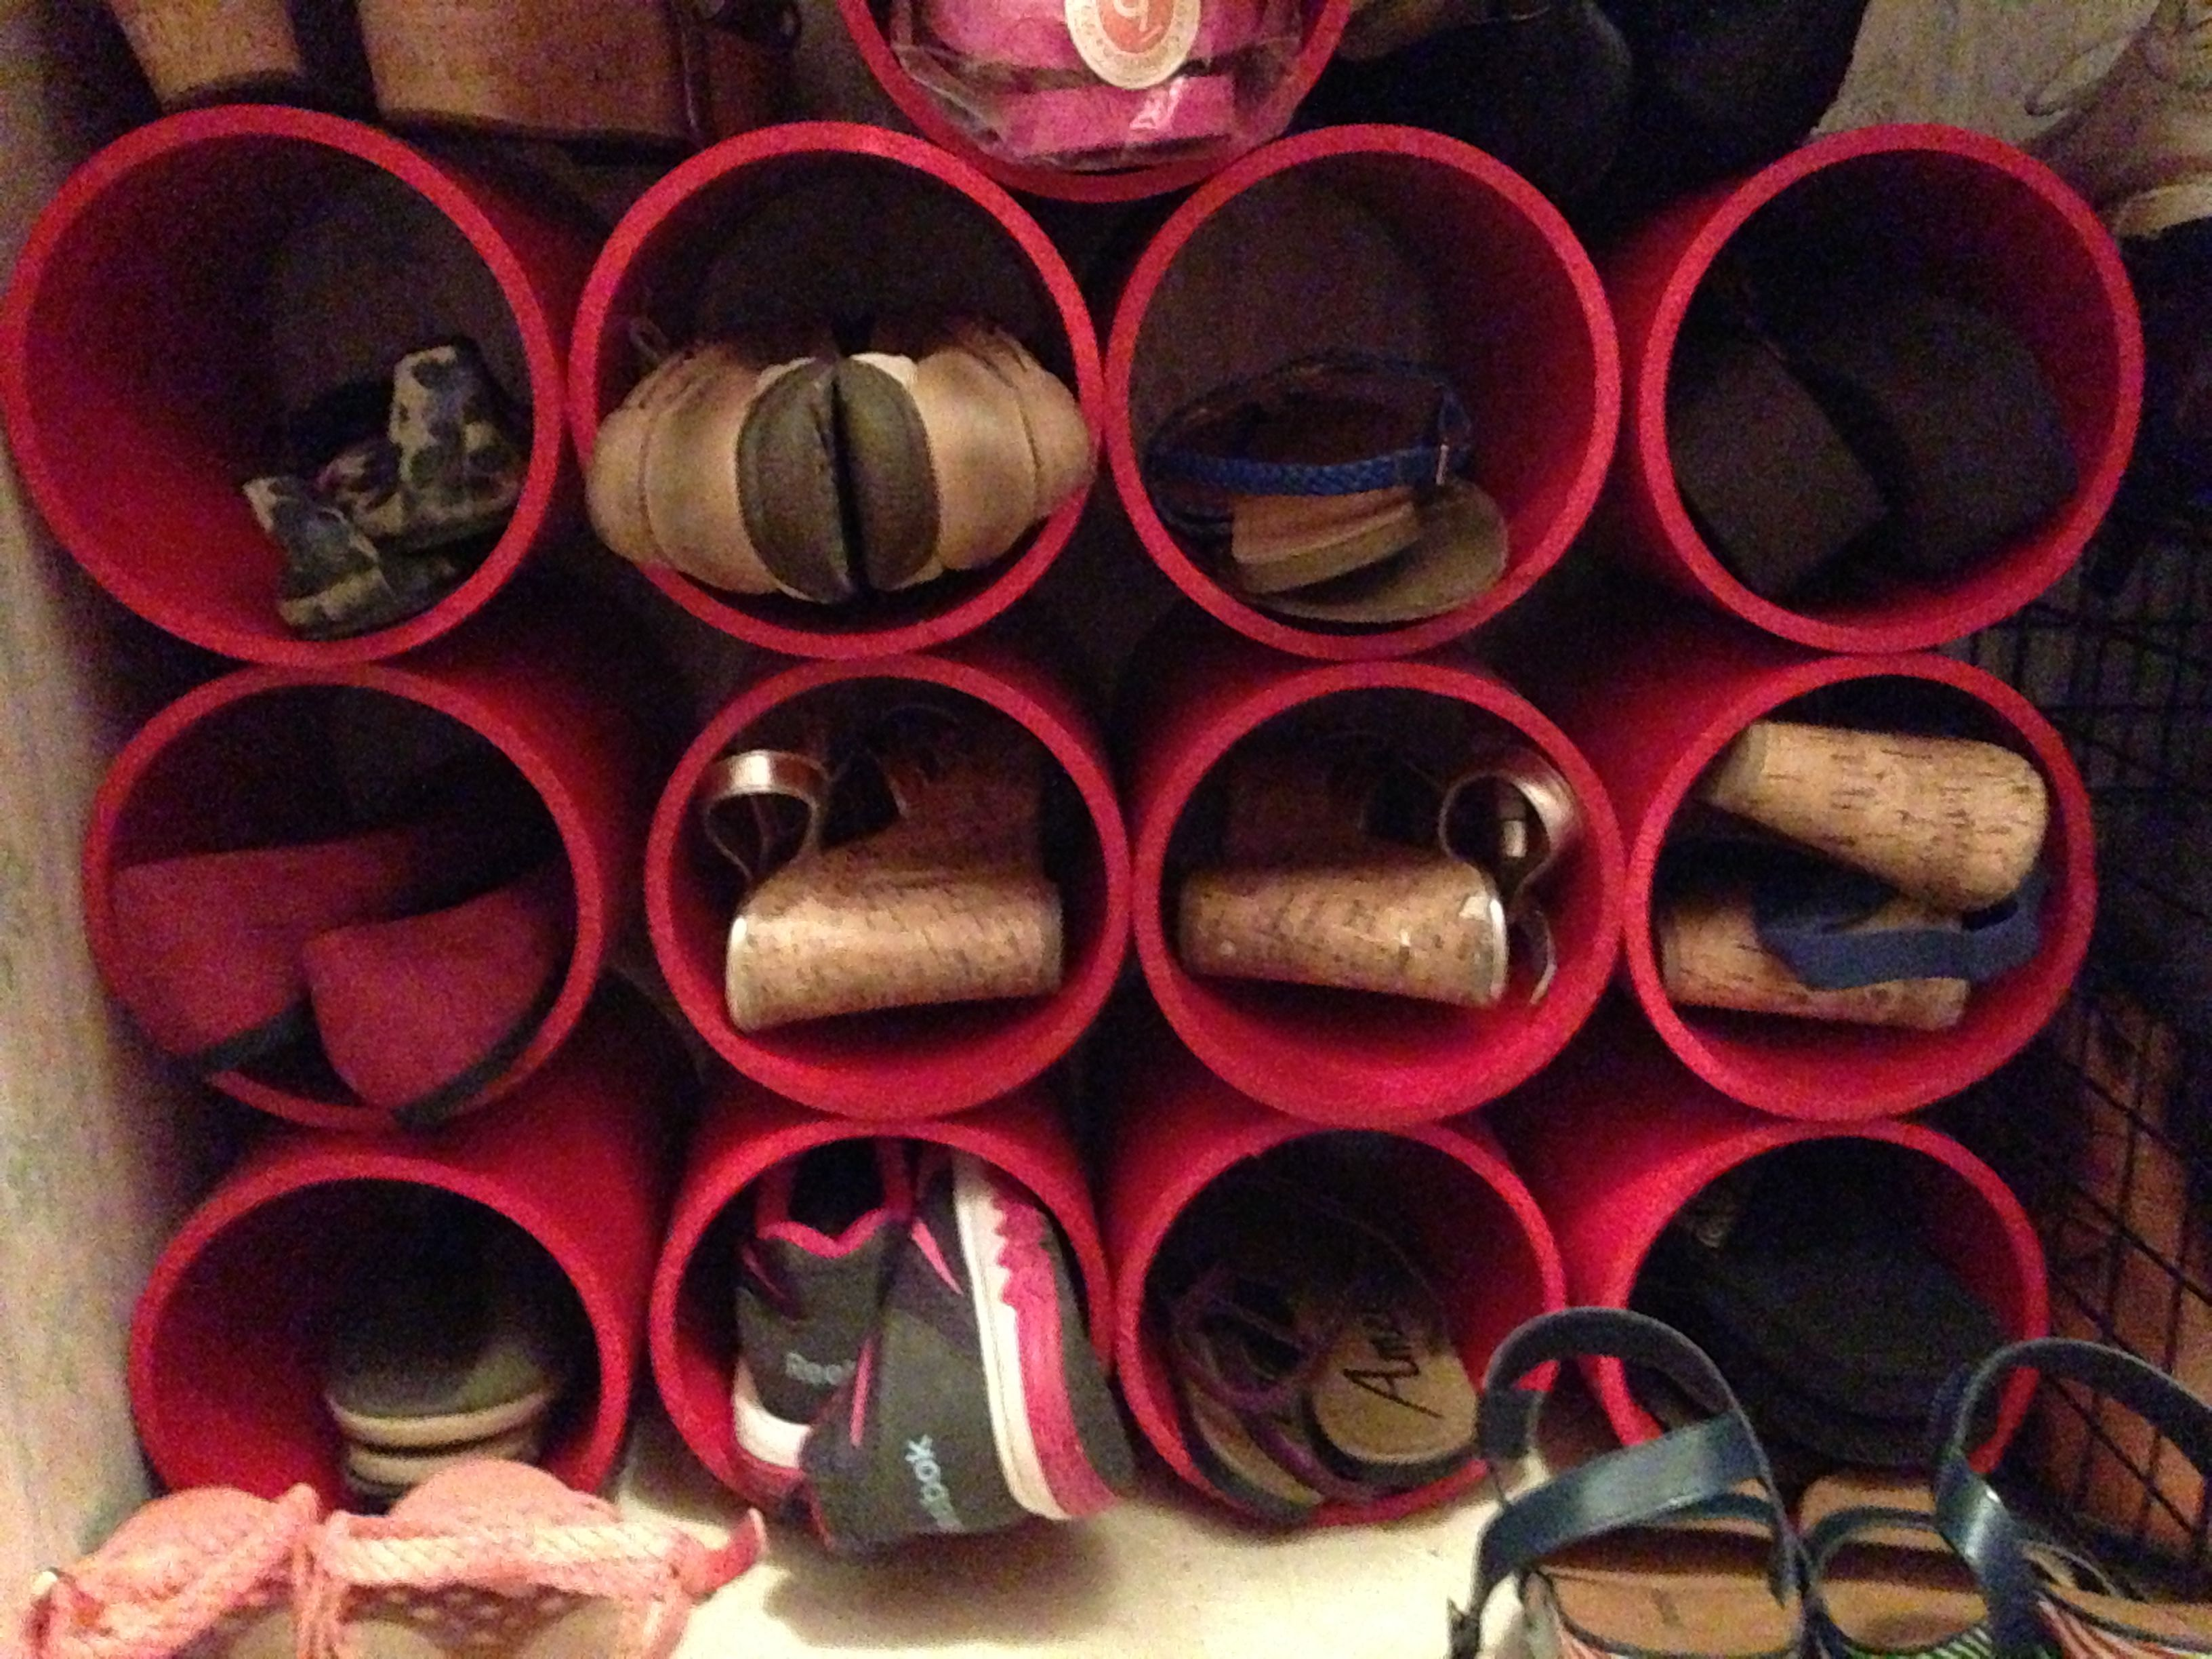 shoe rack organizer made from 6 inch by 10ft PVC pipe from Lowe s